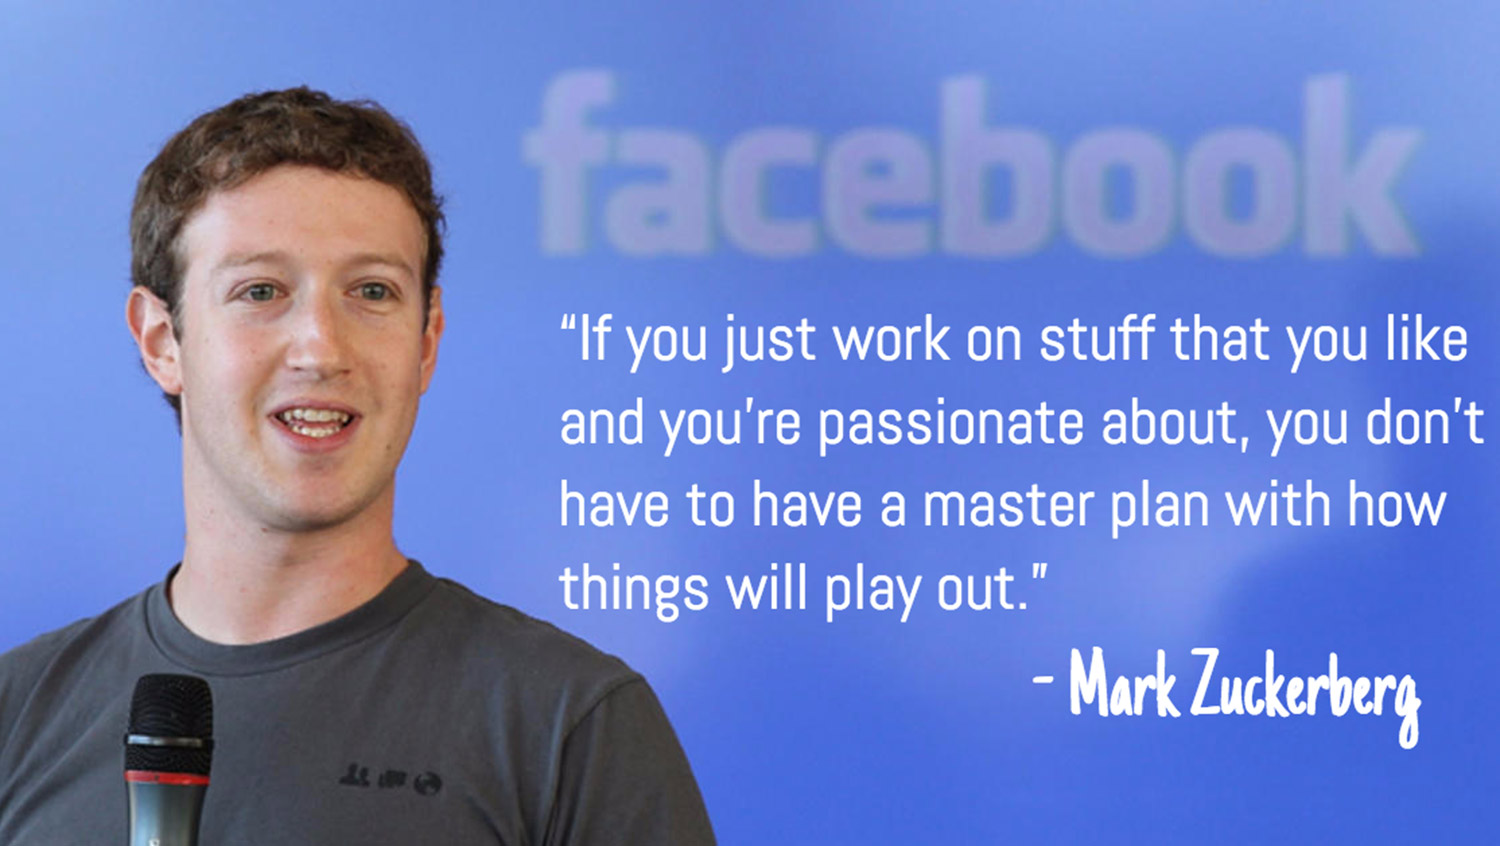 If you just work on stuff that you like and you're passionate about, you don't have to have a master plan with how things will play out. - Mark Zuckerberg.